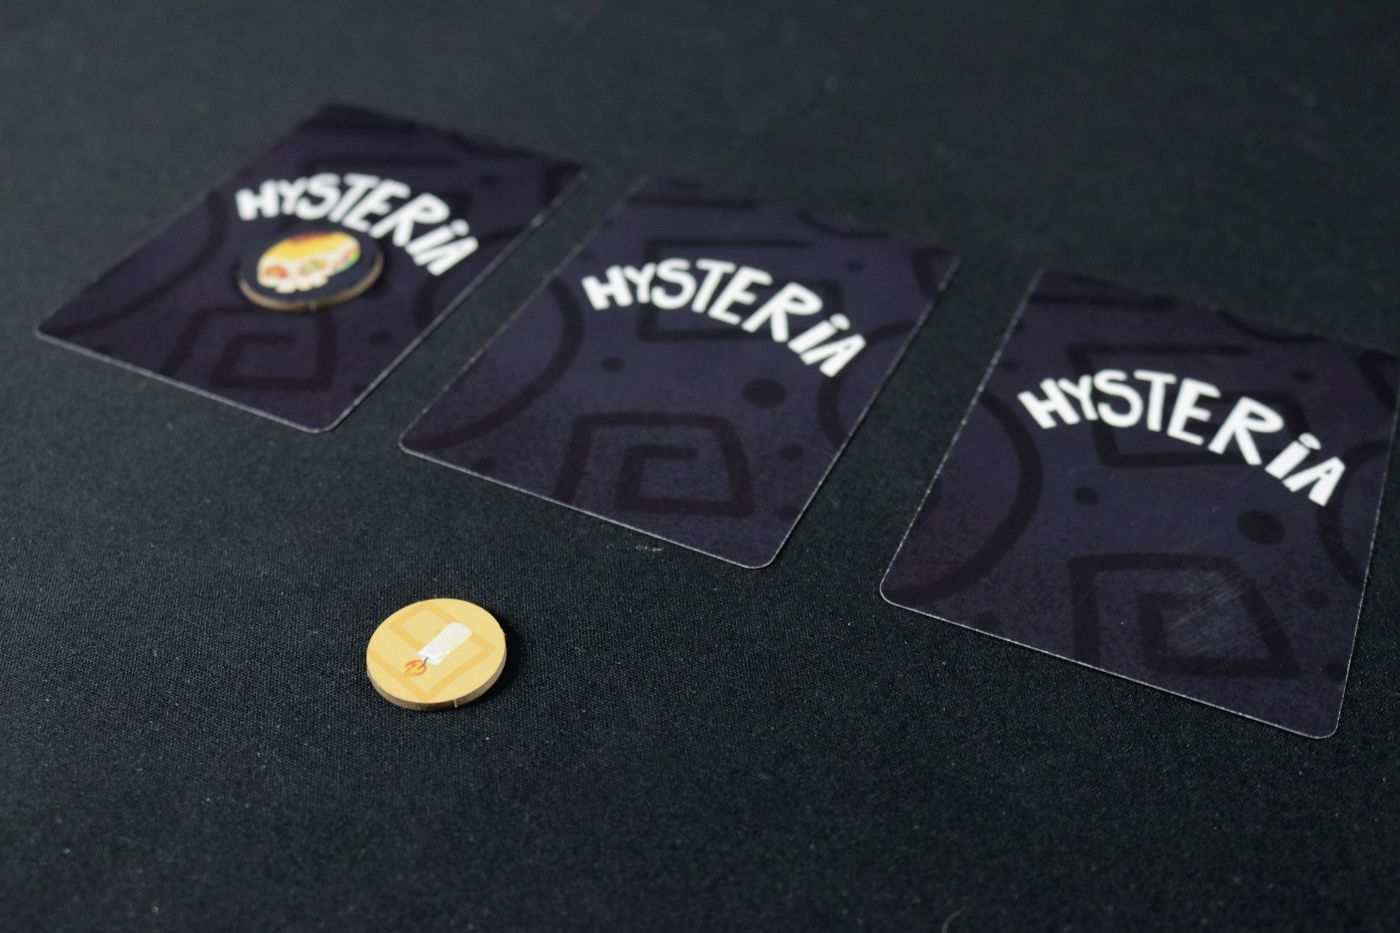 Hysteria cards